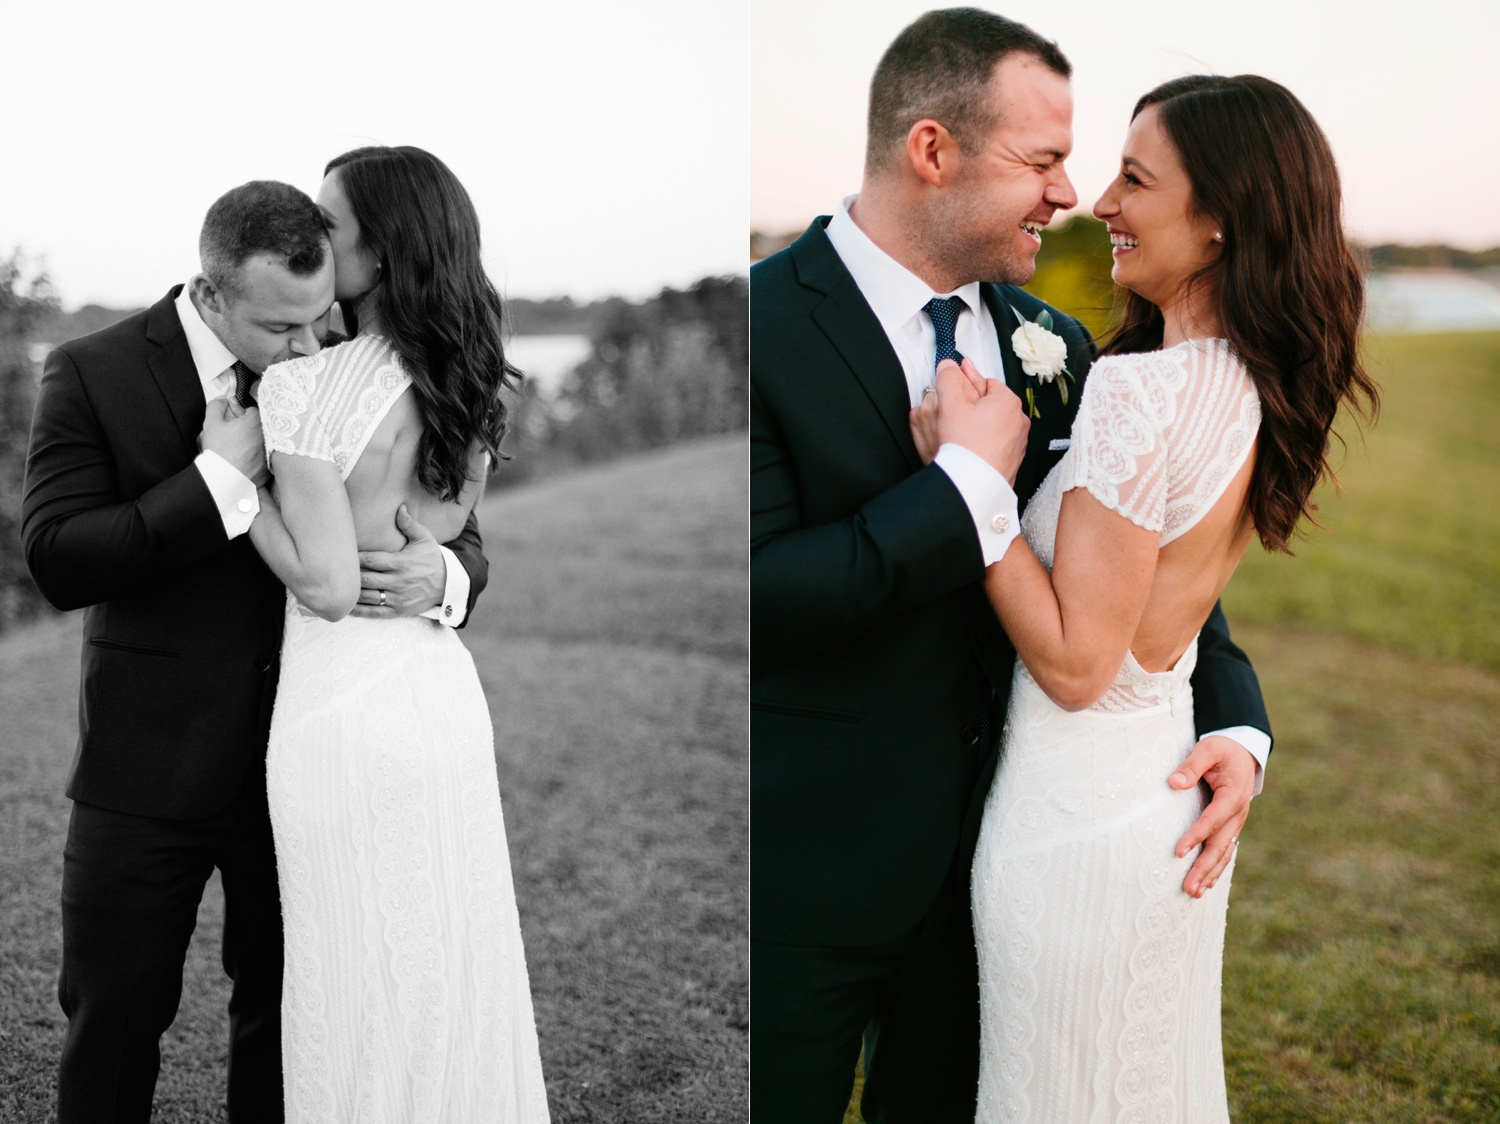 Kadee + Tyler | a raw, emotional wedding at the Filter Building on White Rock Lake in Dallas, TX by North Texas Wedding Photographer, Rachel Meagan Photography 180